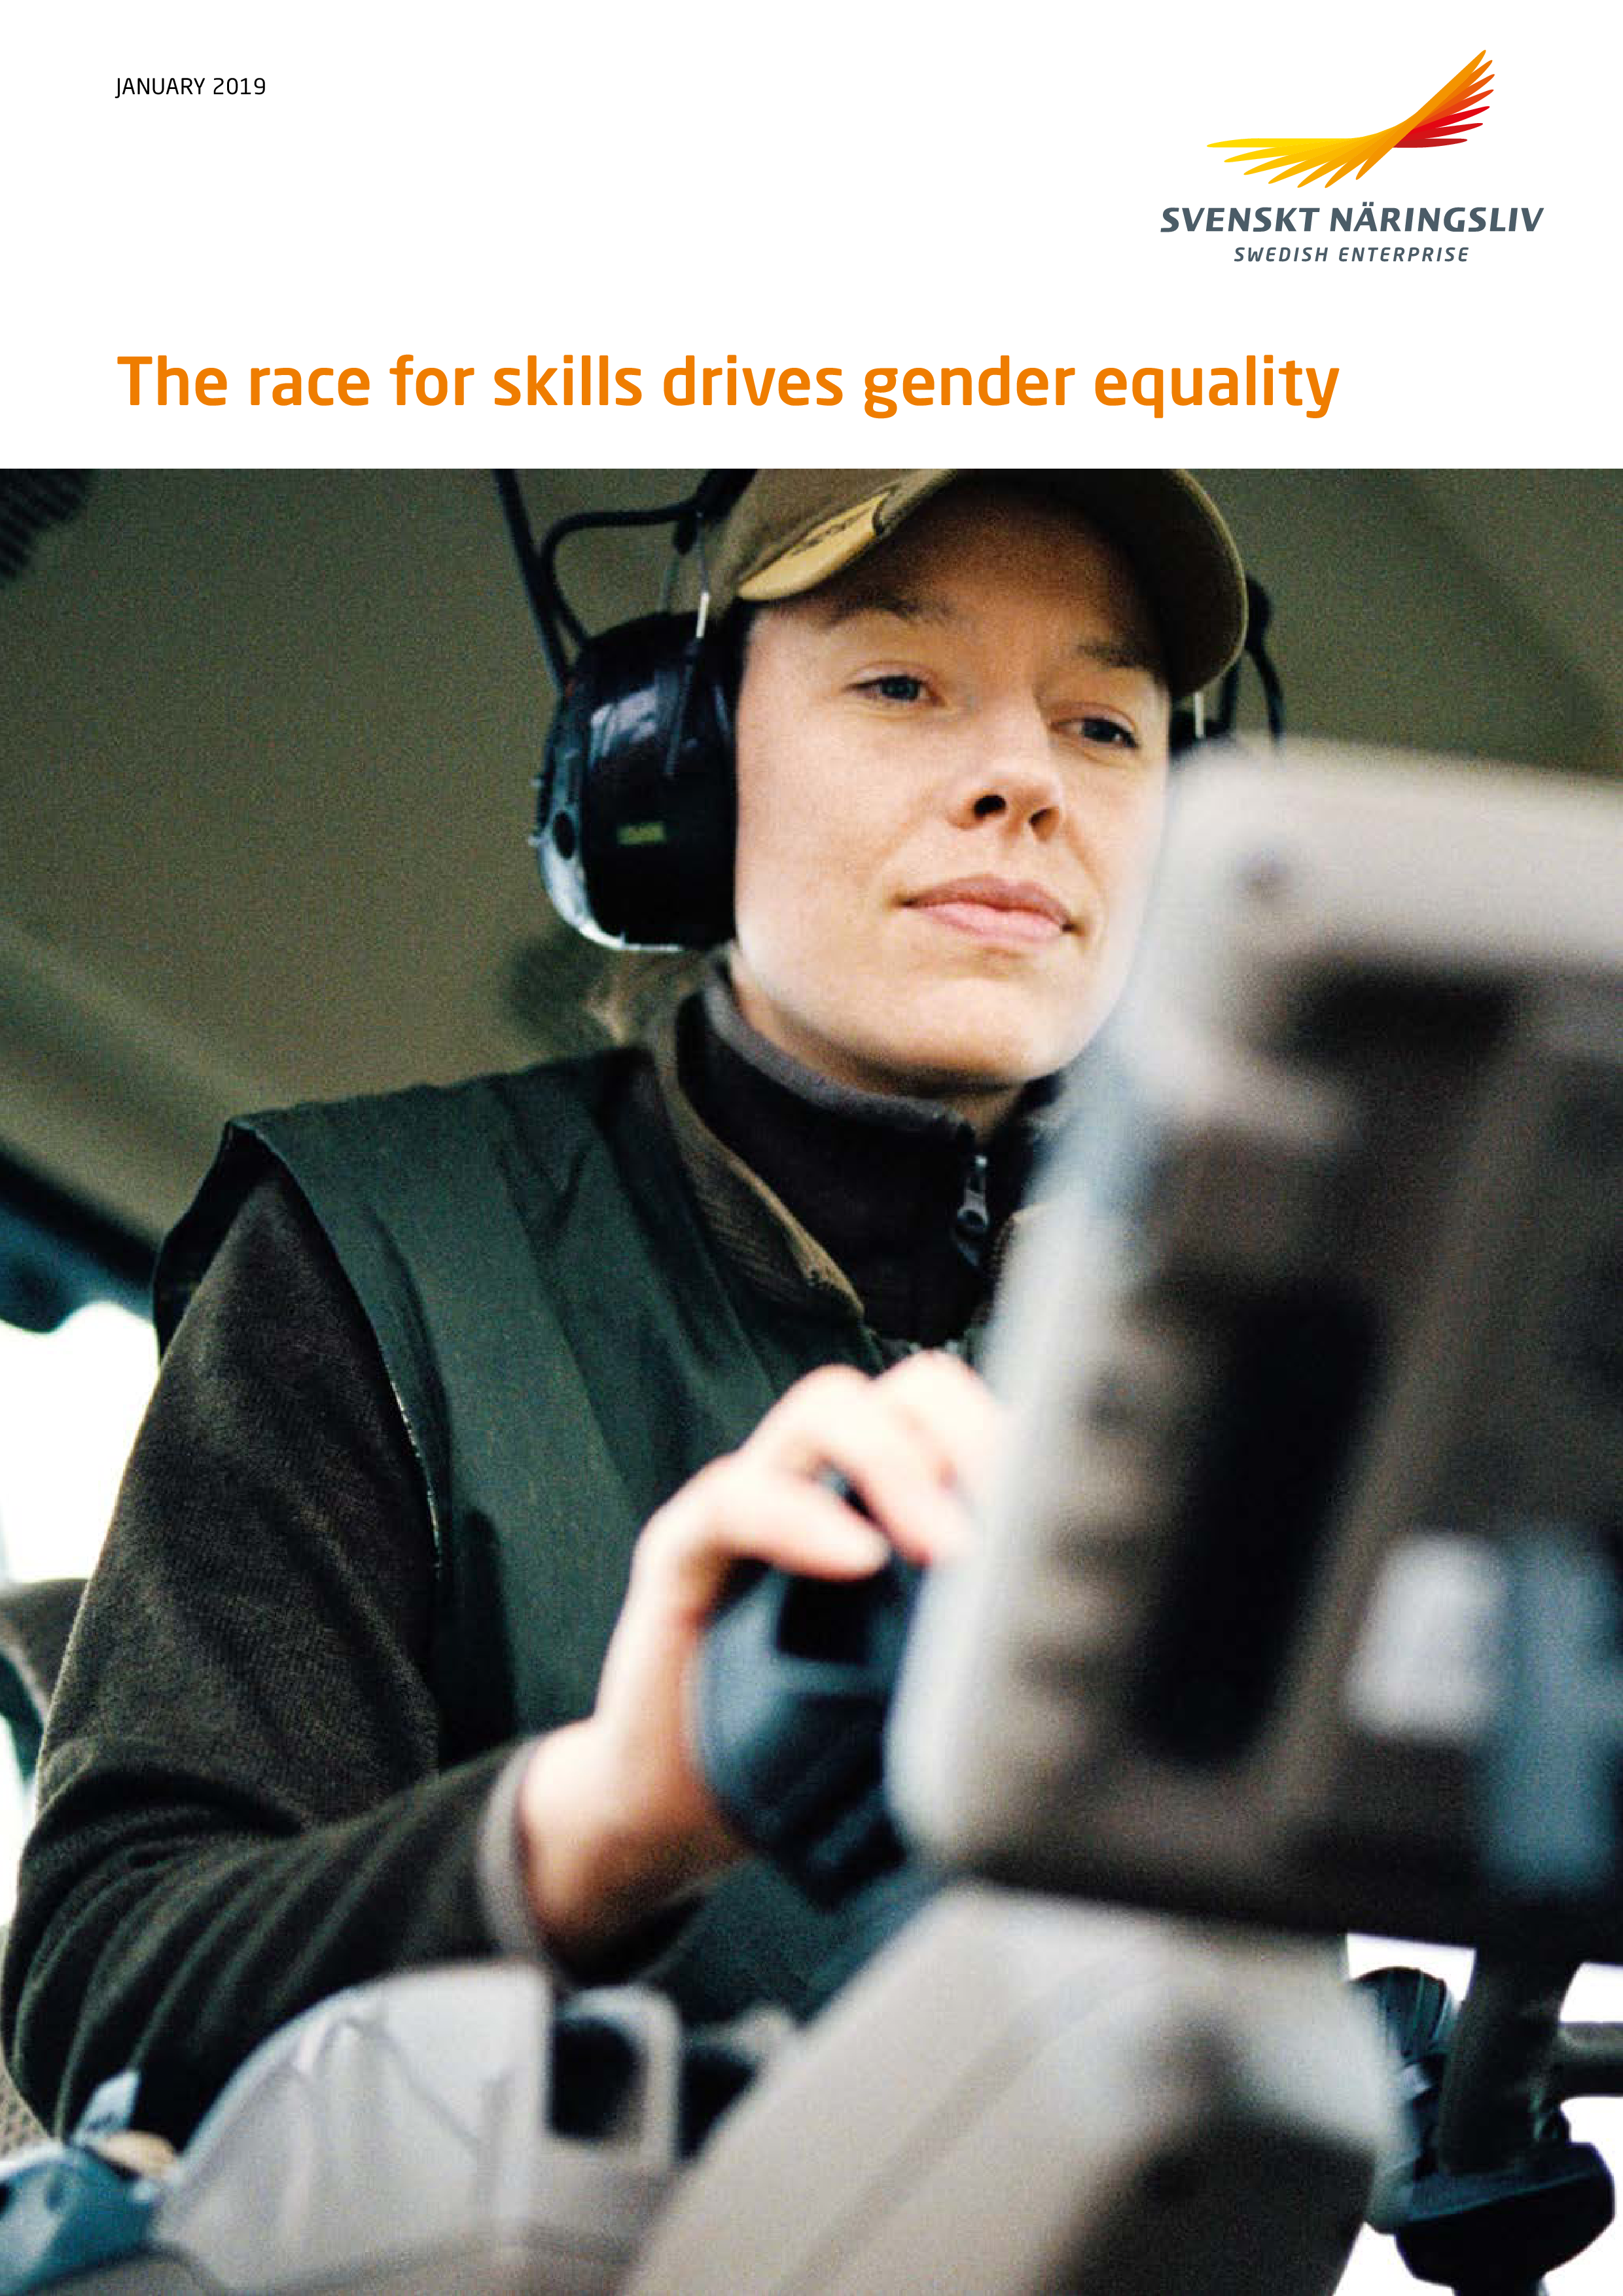 The race for skills drives gender equality